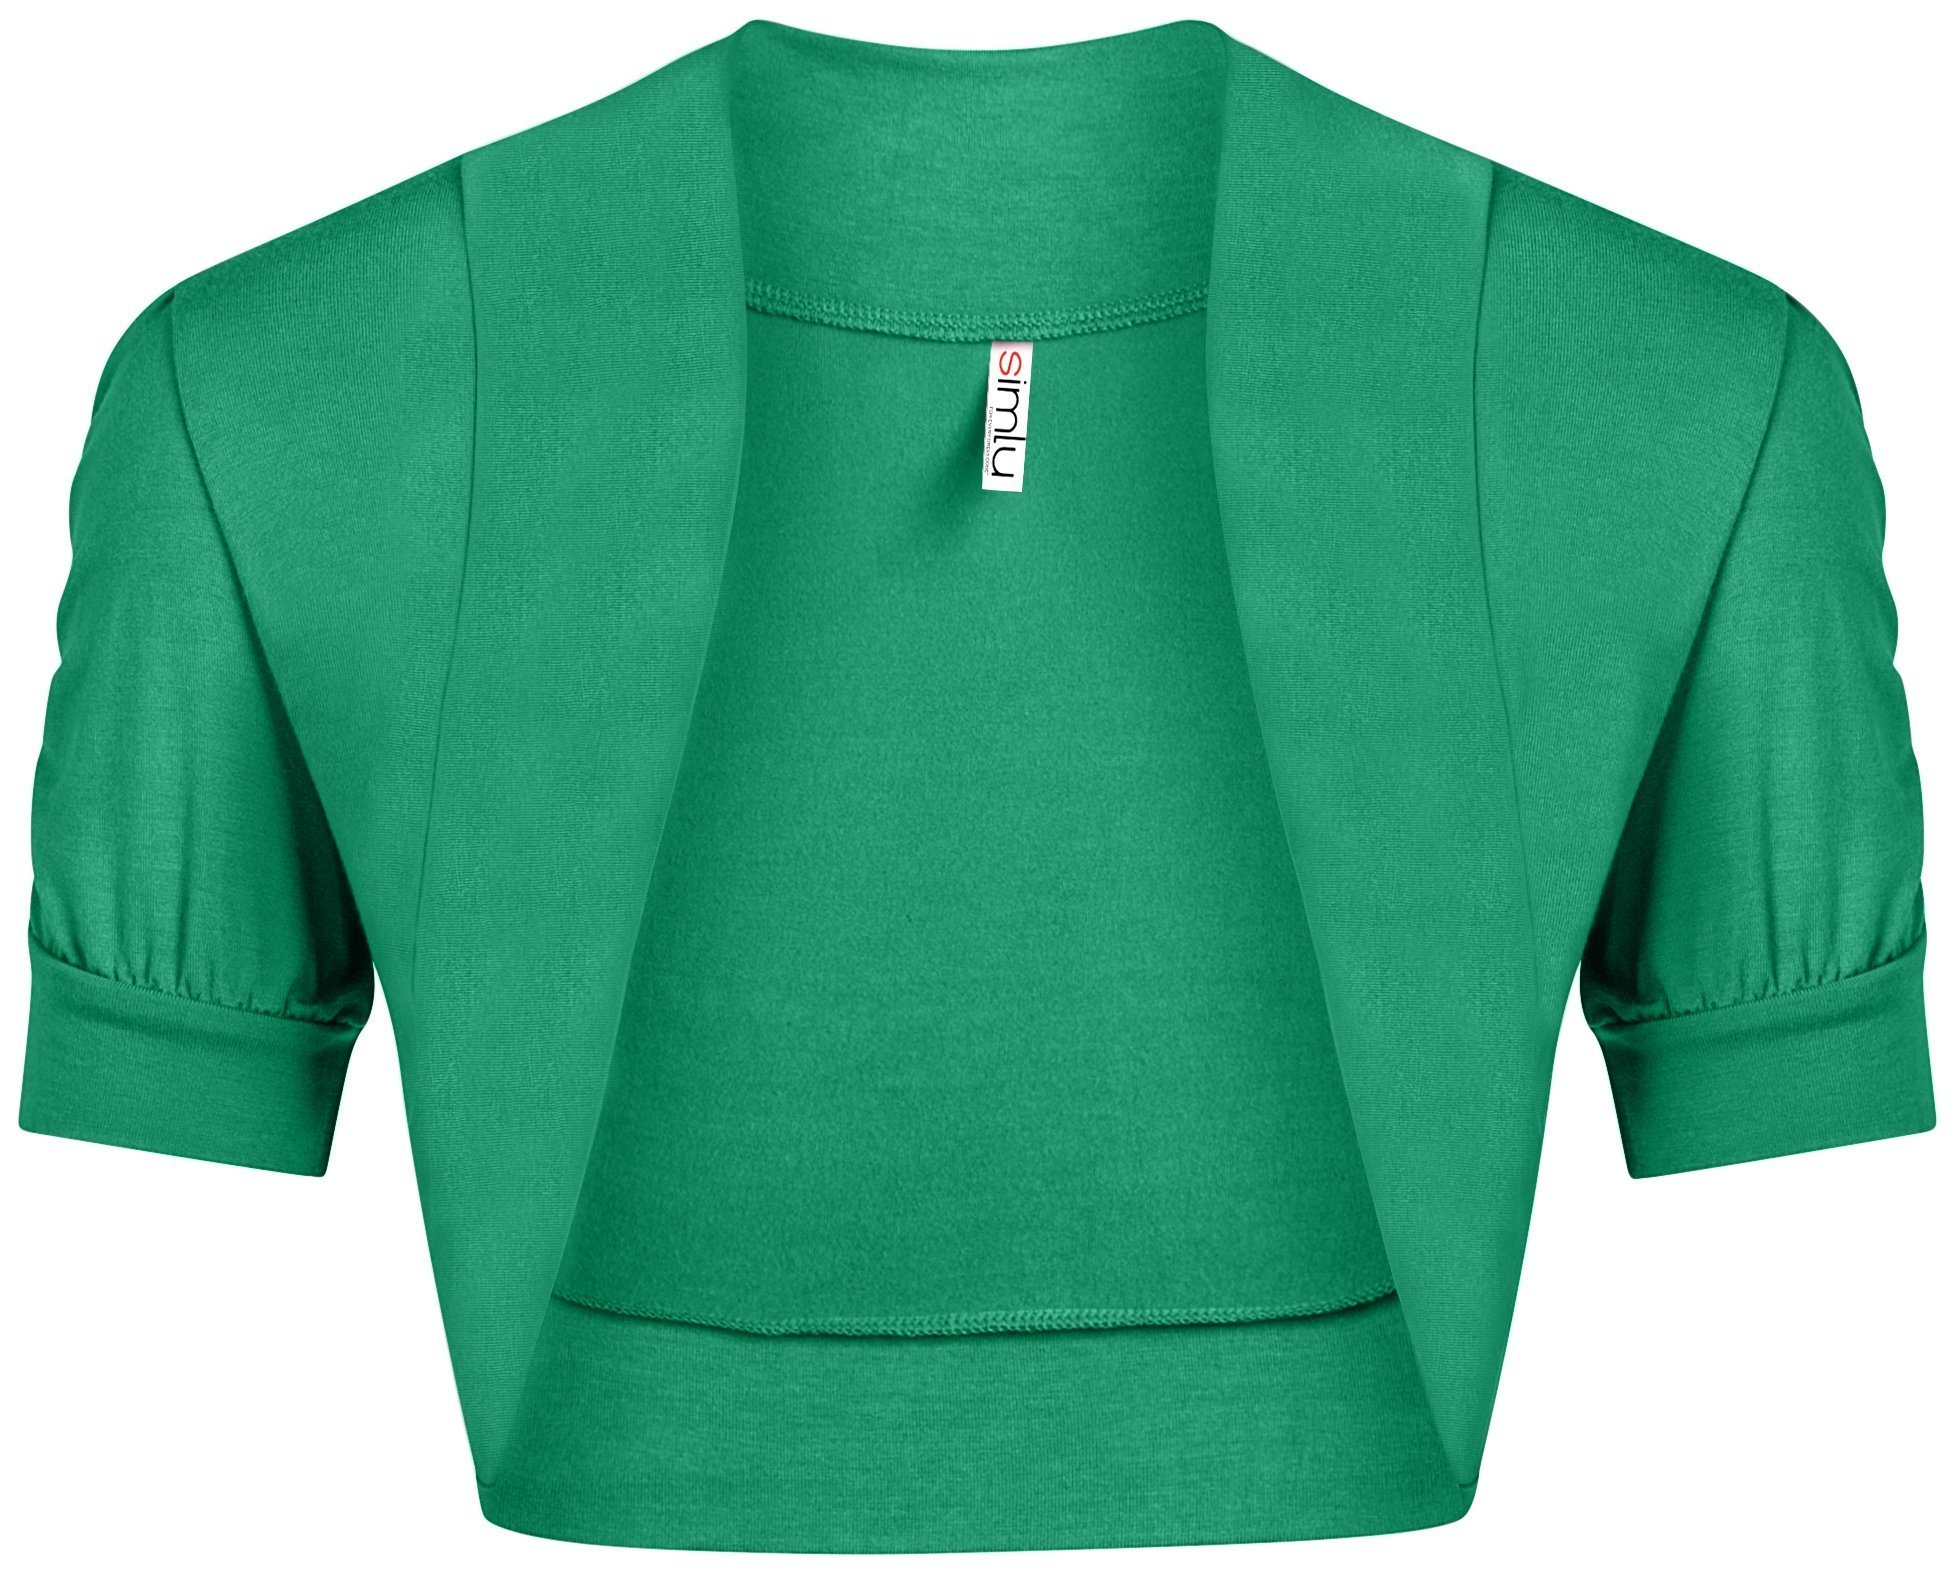 Womens Emerald Short Sleeve Bolero Shrug Sweater Cardigan Ladies Evening Shrug Regular  Emerald Medium